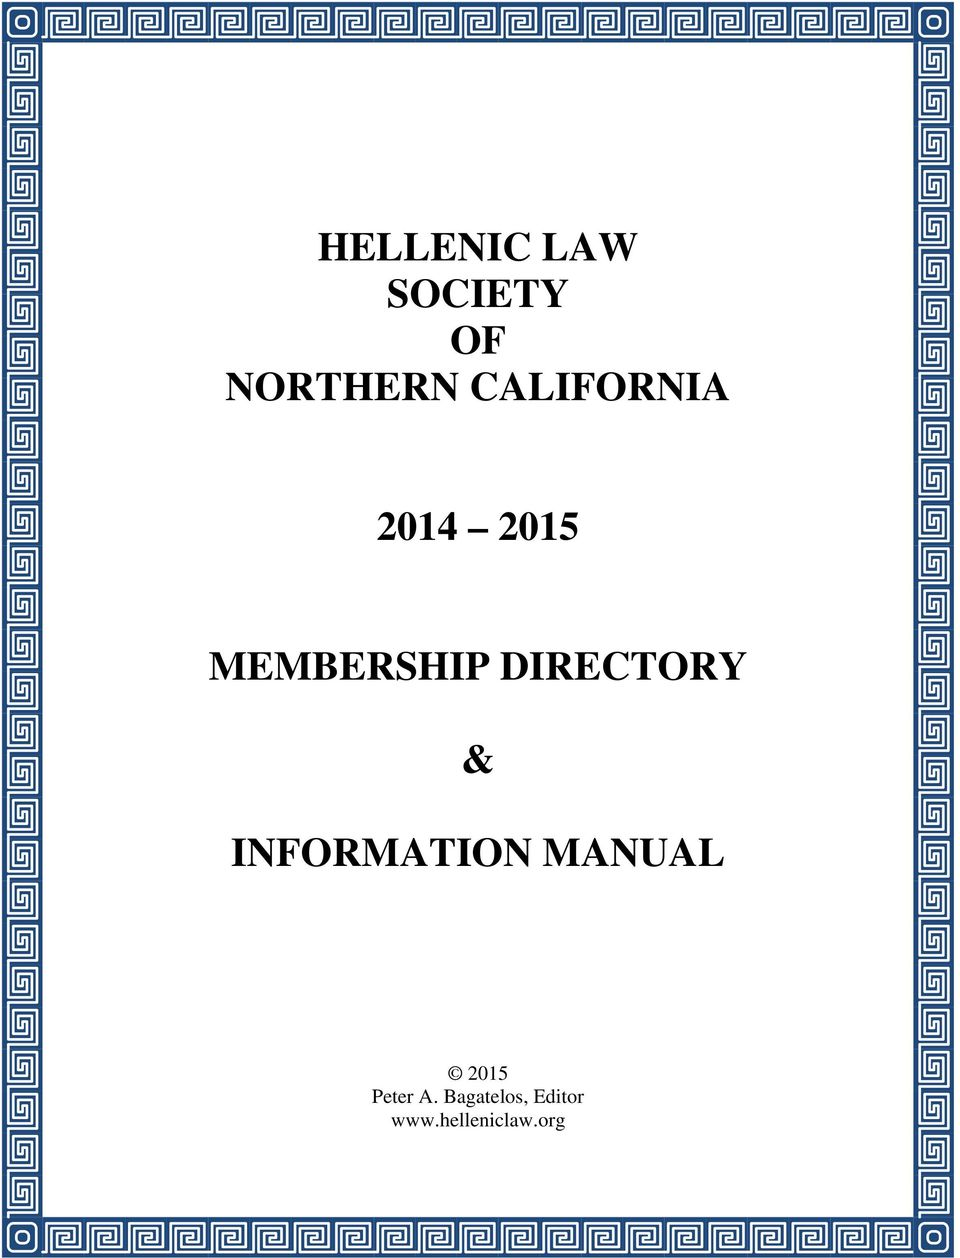 DIRECTORY & INFORMATION MANUAL 2015